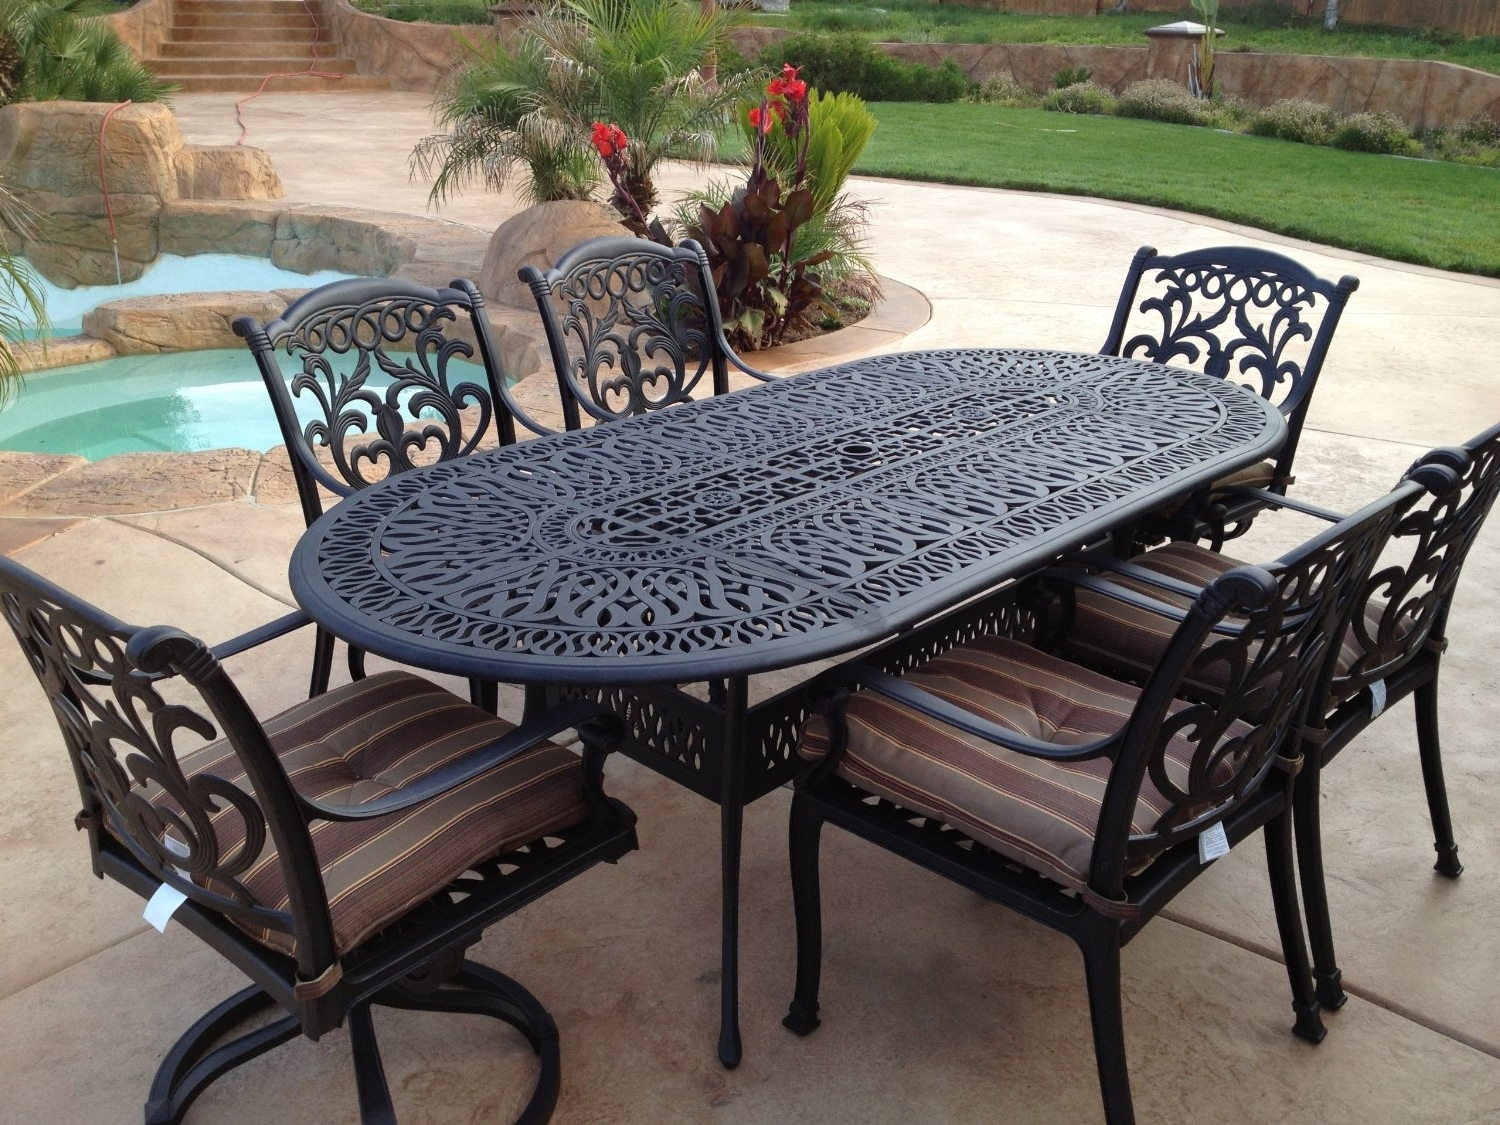 Wrought Iron Patio Conversation Sets Within Well Liked Patio Table: Wrought Iron Patio Set (View 20 of 20)